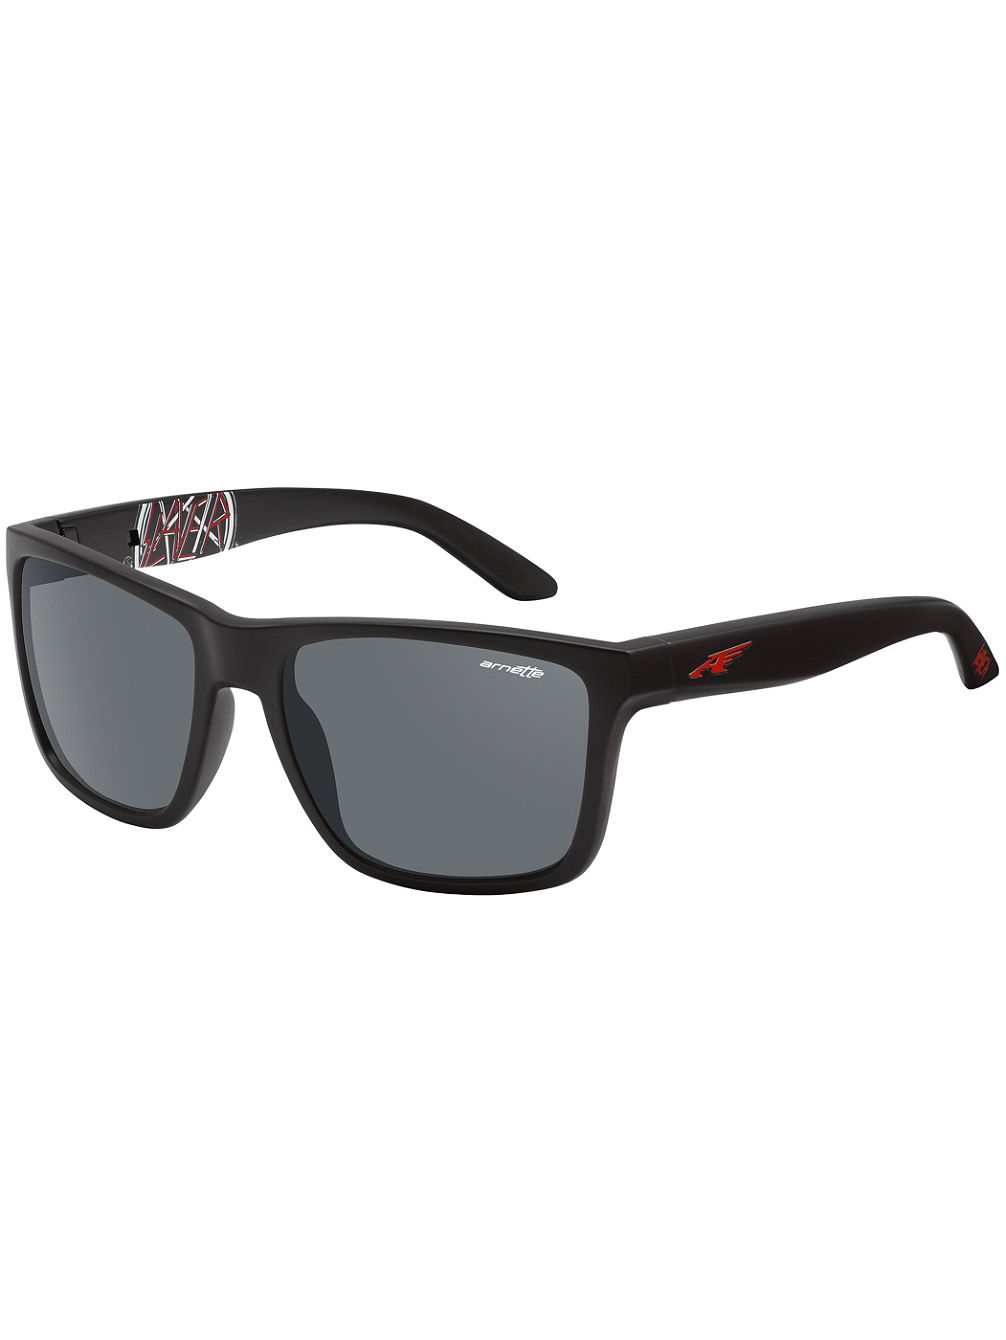 85b8353b6689d Compra Arnette Witch Doctor Slayer Matte Black With Mat online na  blue-tomato.com